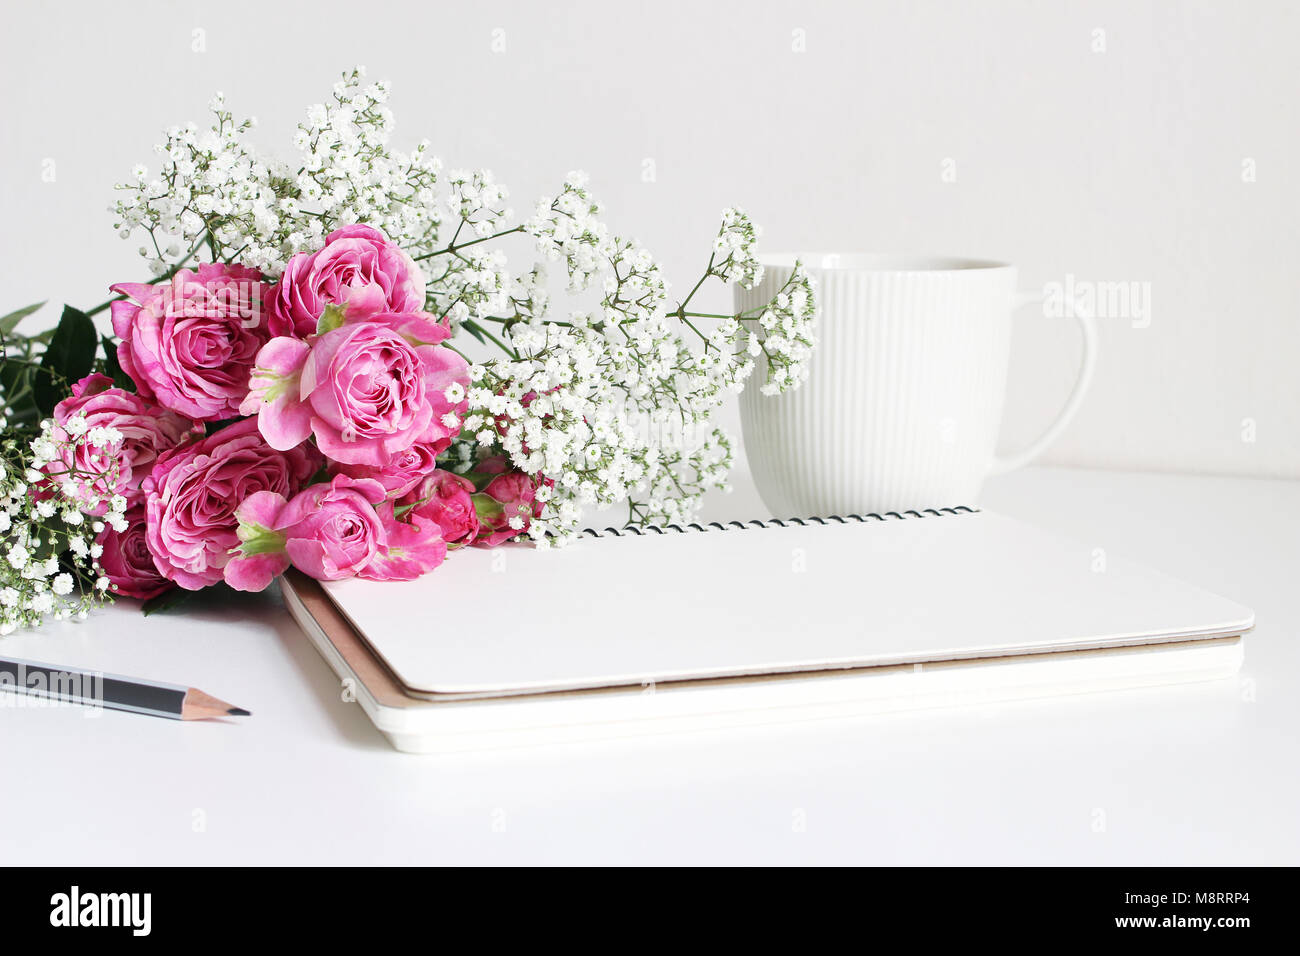 Styled stock photo. Closeup of wedding bouquet made of pink roses and baby's breath, Gypsophila flowers lying on Stock Photo